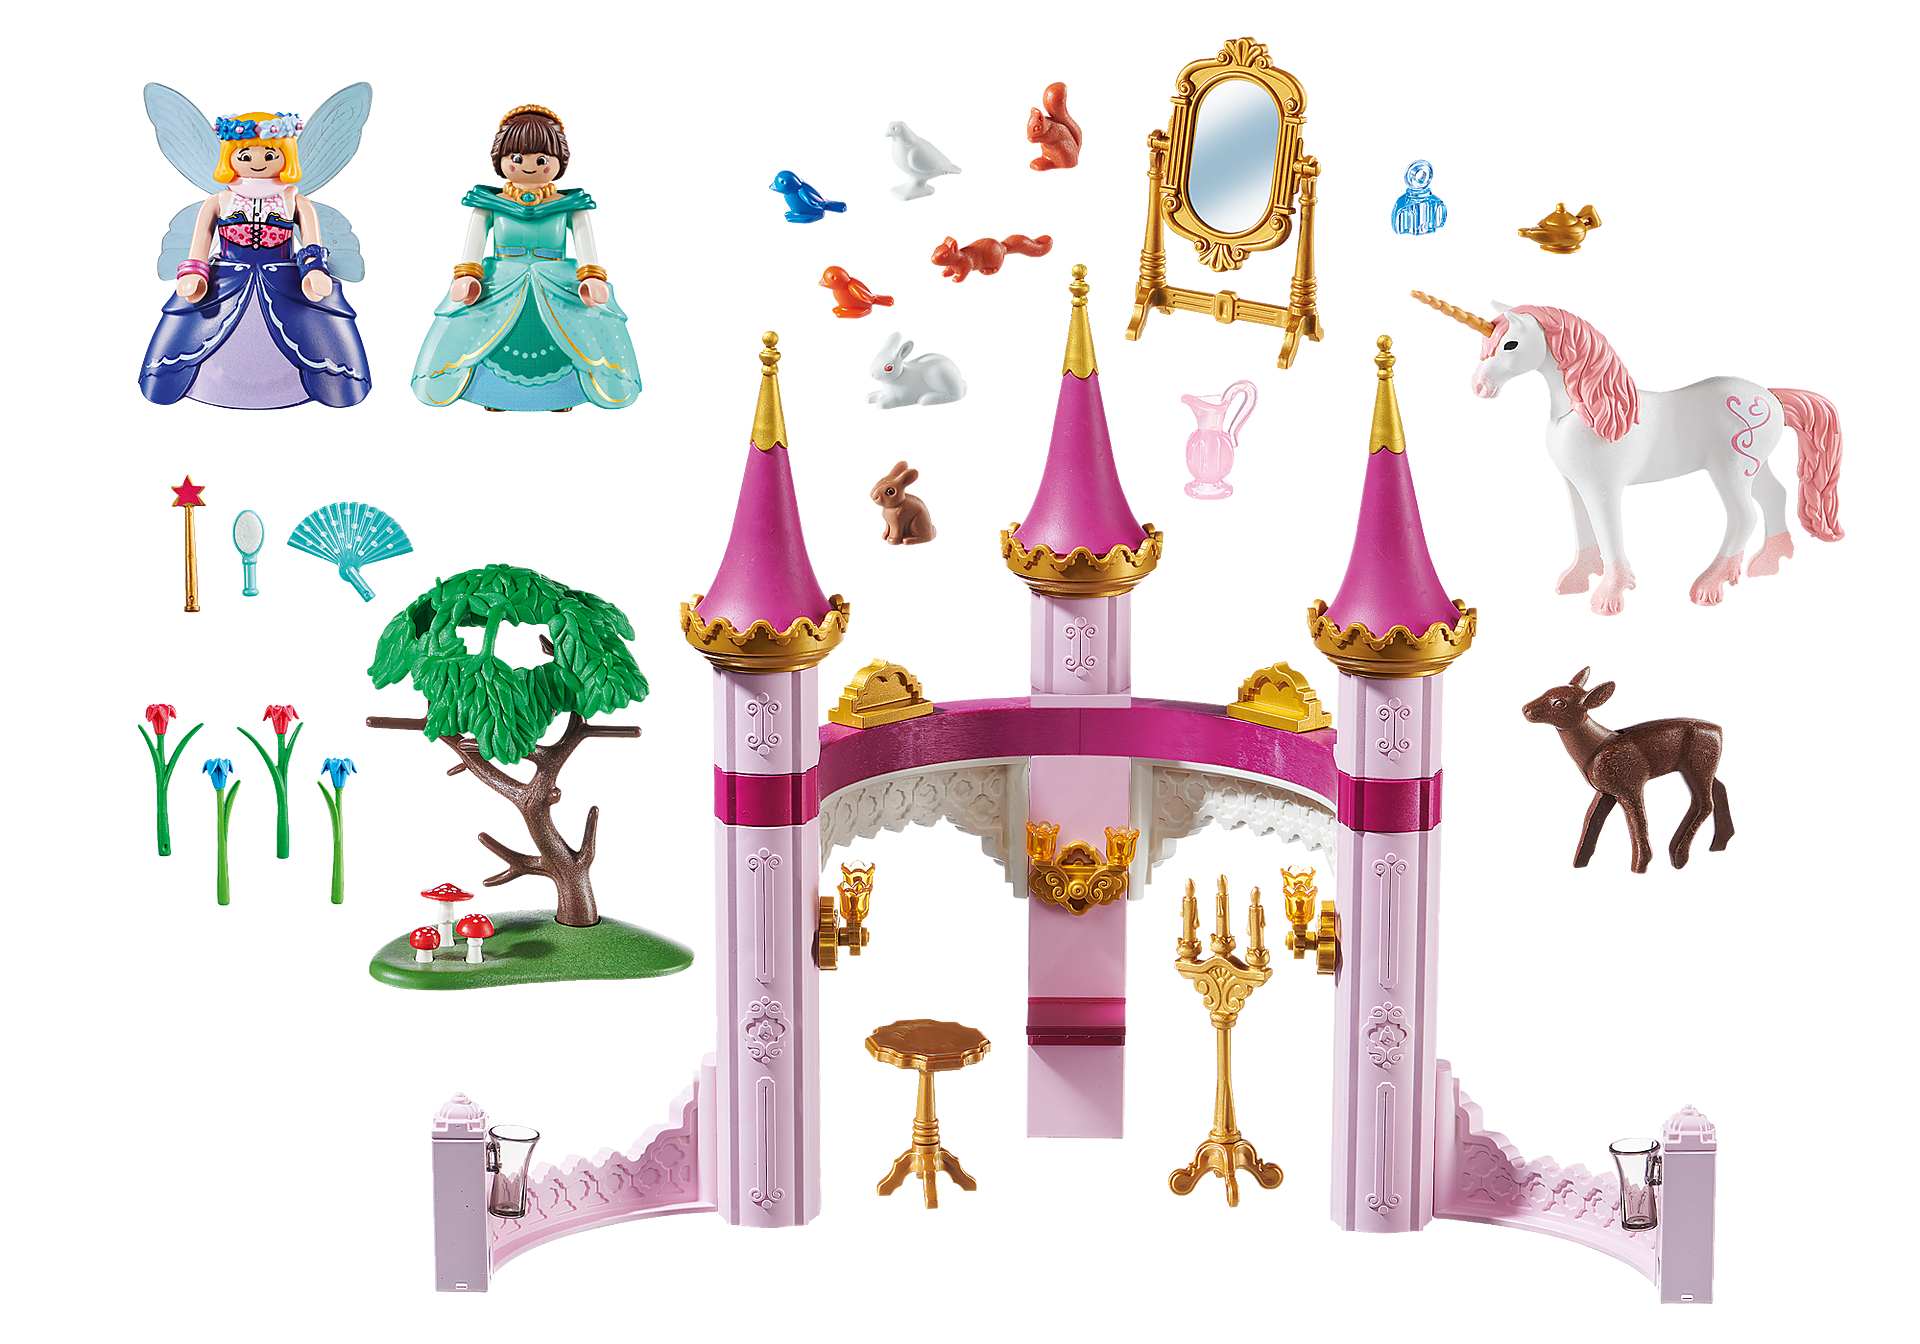 70077 PLAYMOBIL:THE MOVIE Marla in the Fairytale Castle zoom image3